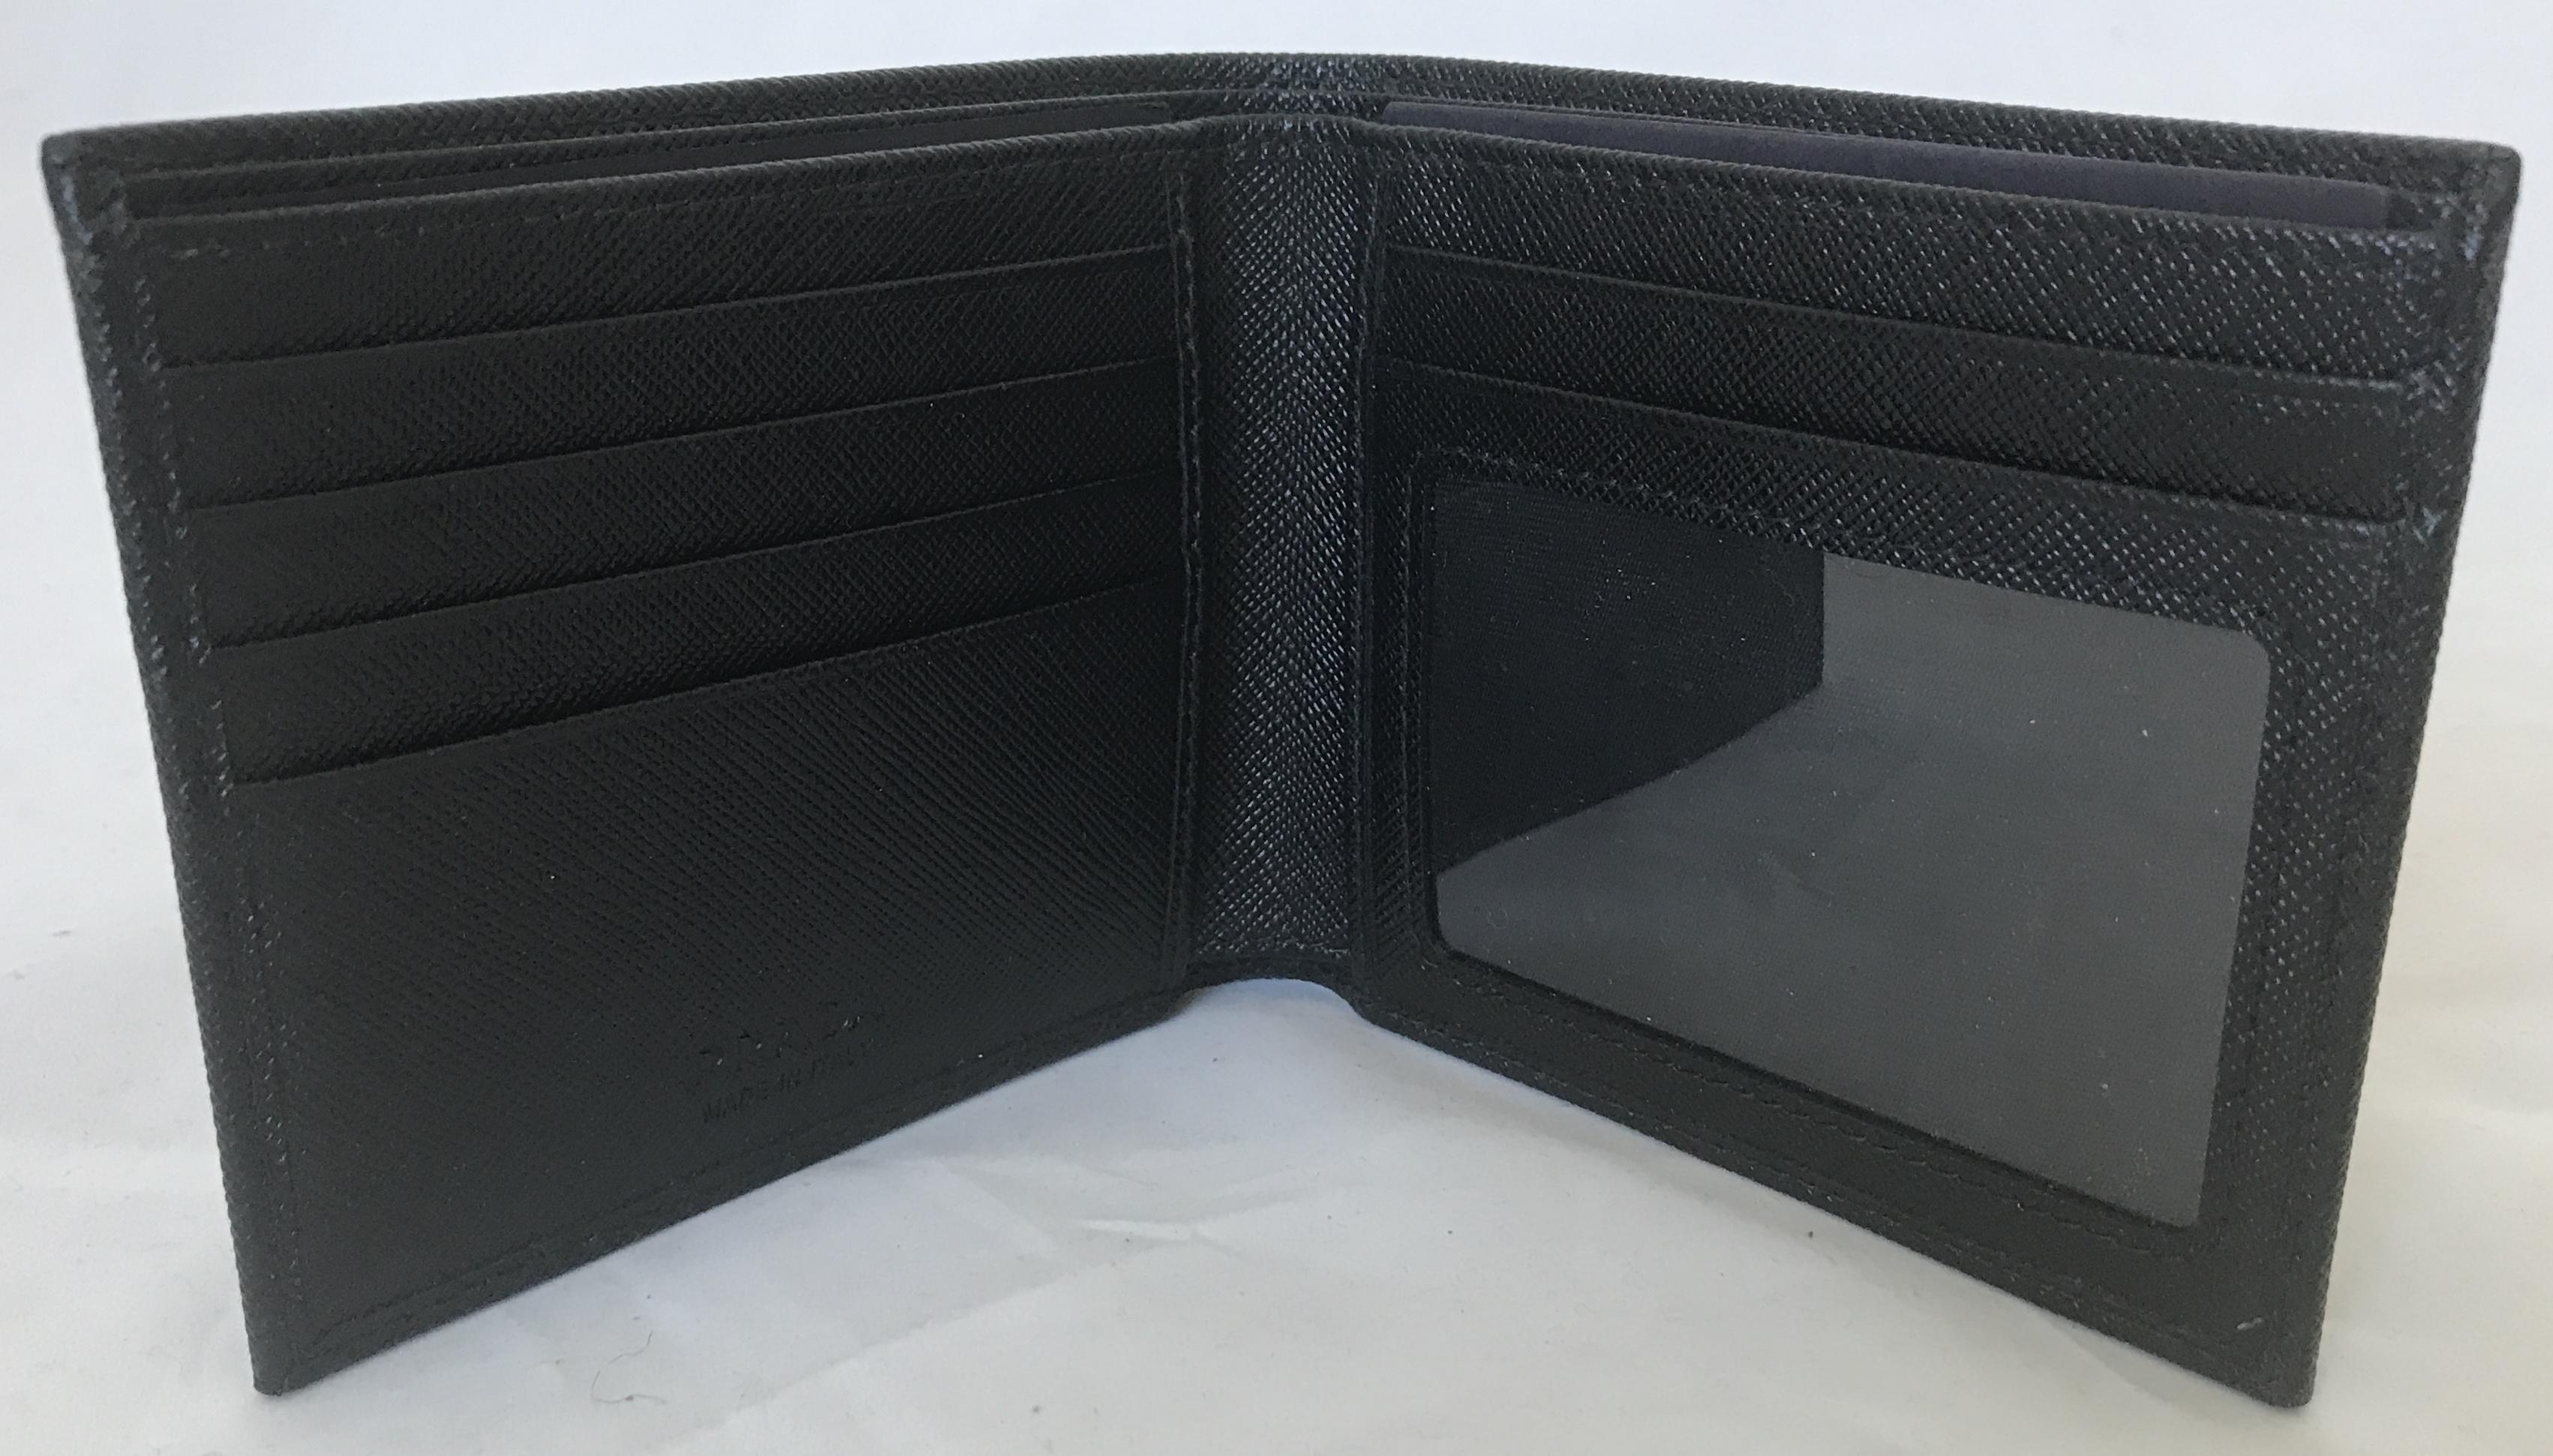 348242c1b423 ... where to buy prada new in box men black leather bi fold wallet 2mo233.  123456